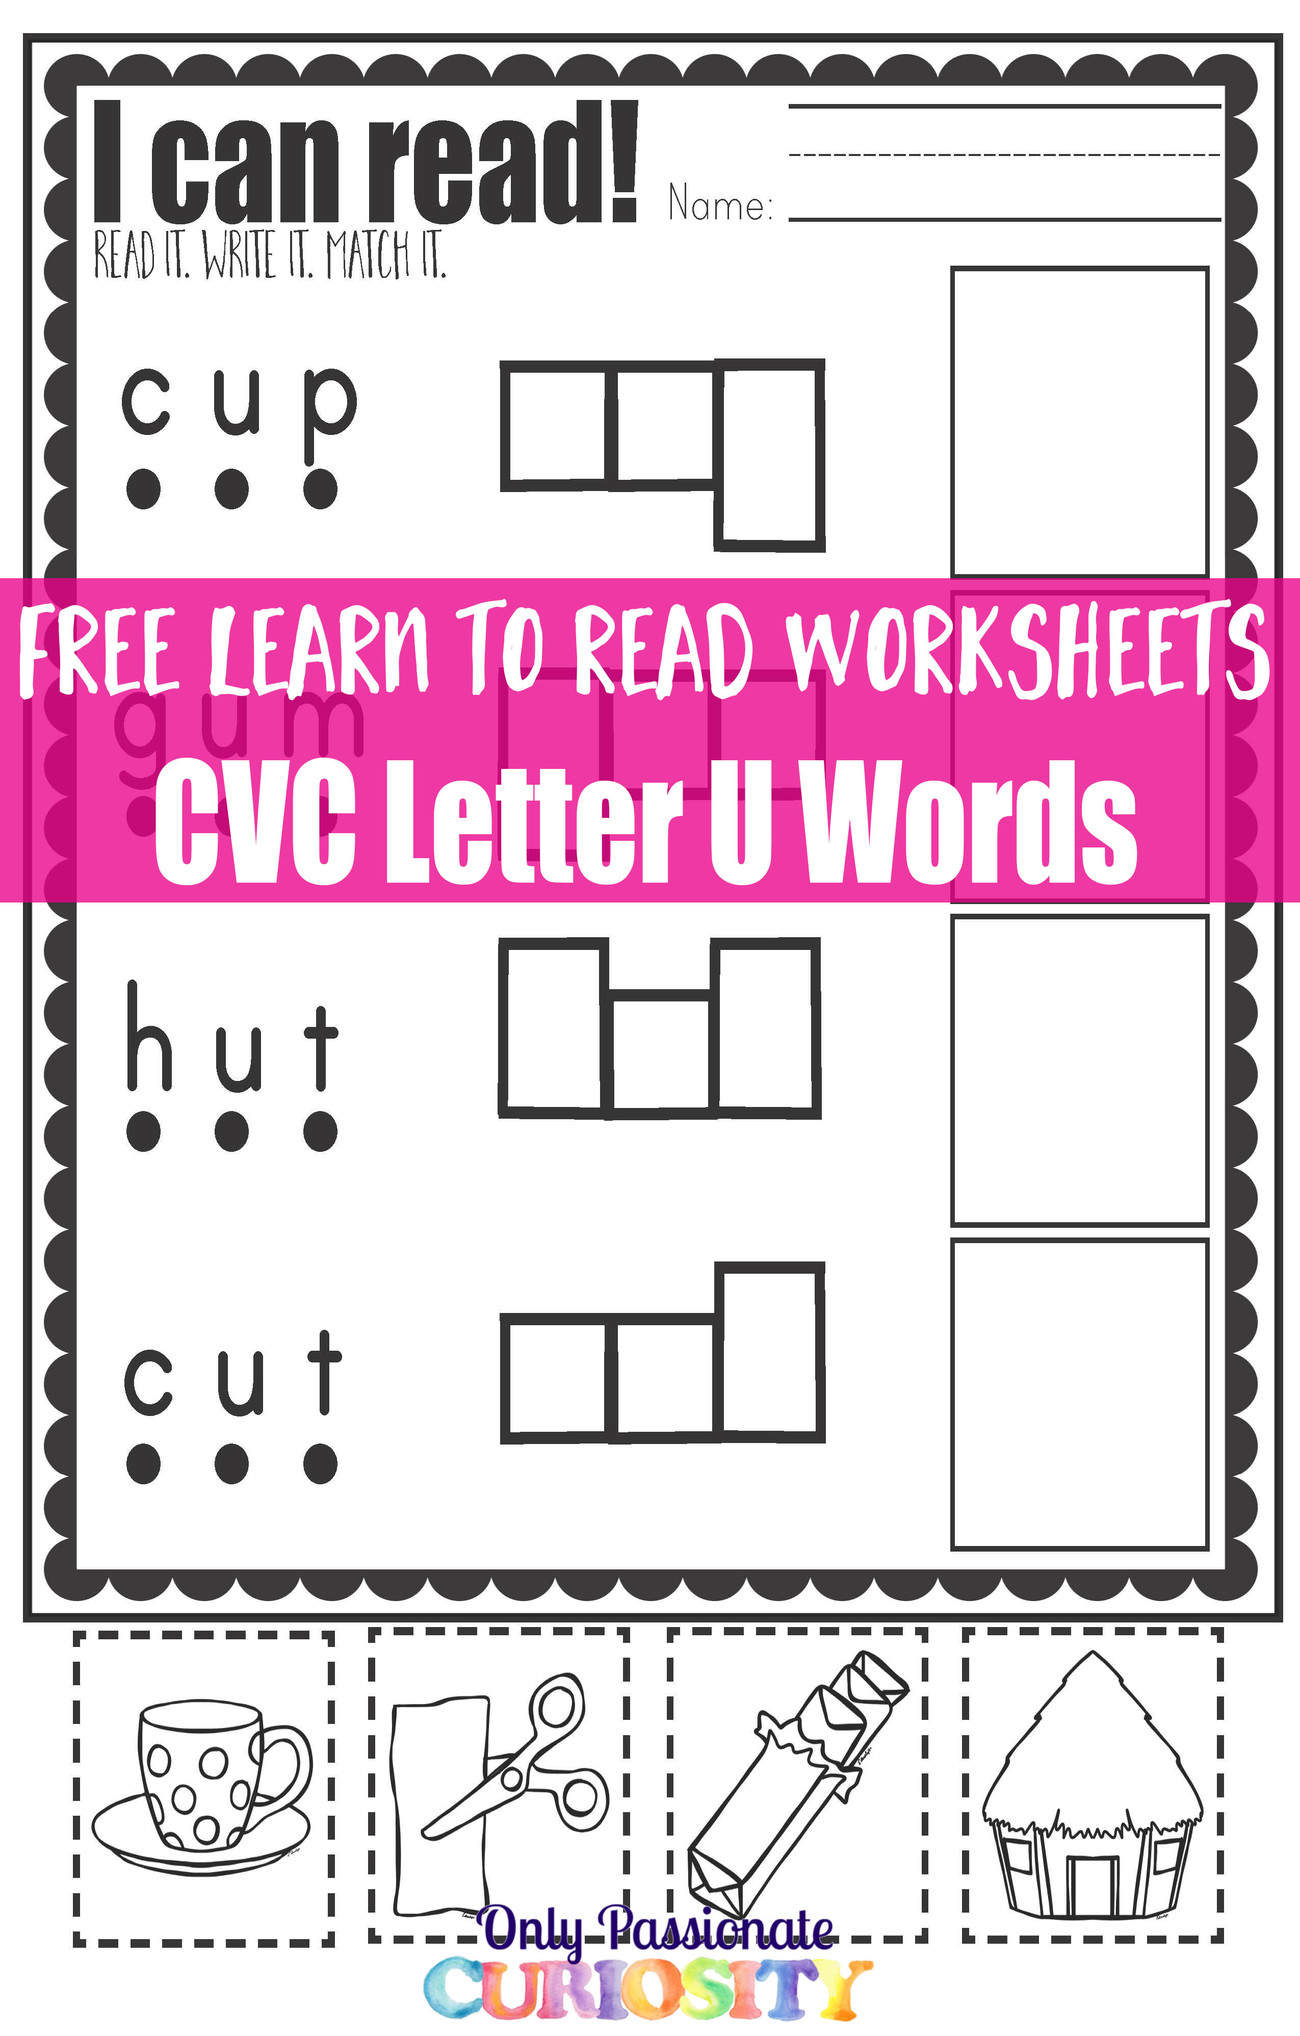 Learn To Read Worksheets Practice With Cvc U Words